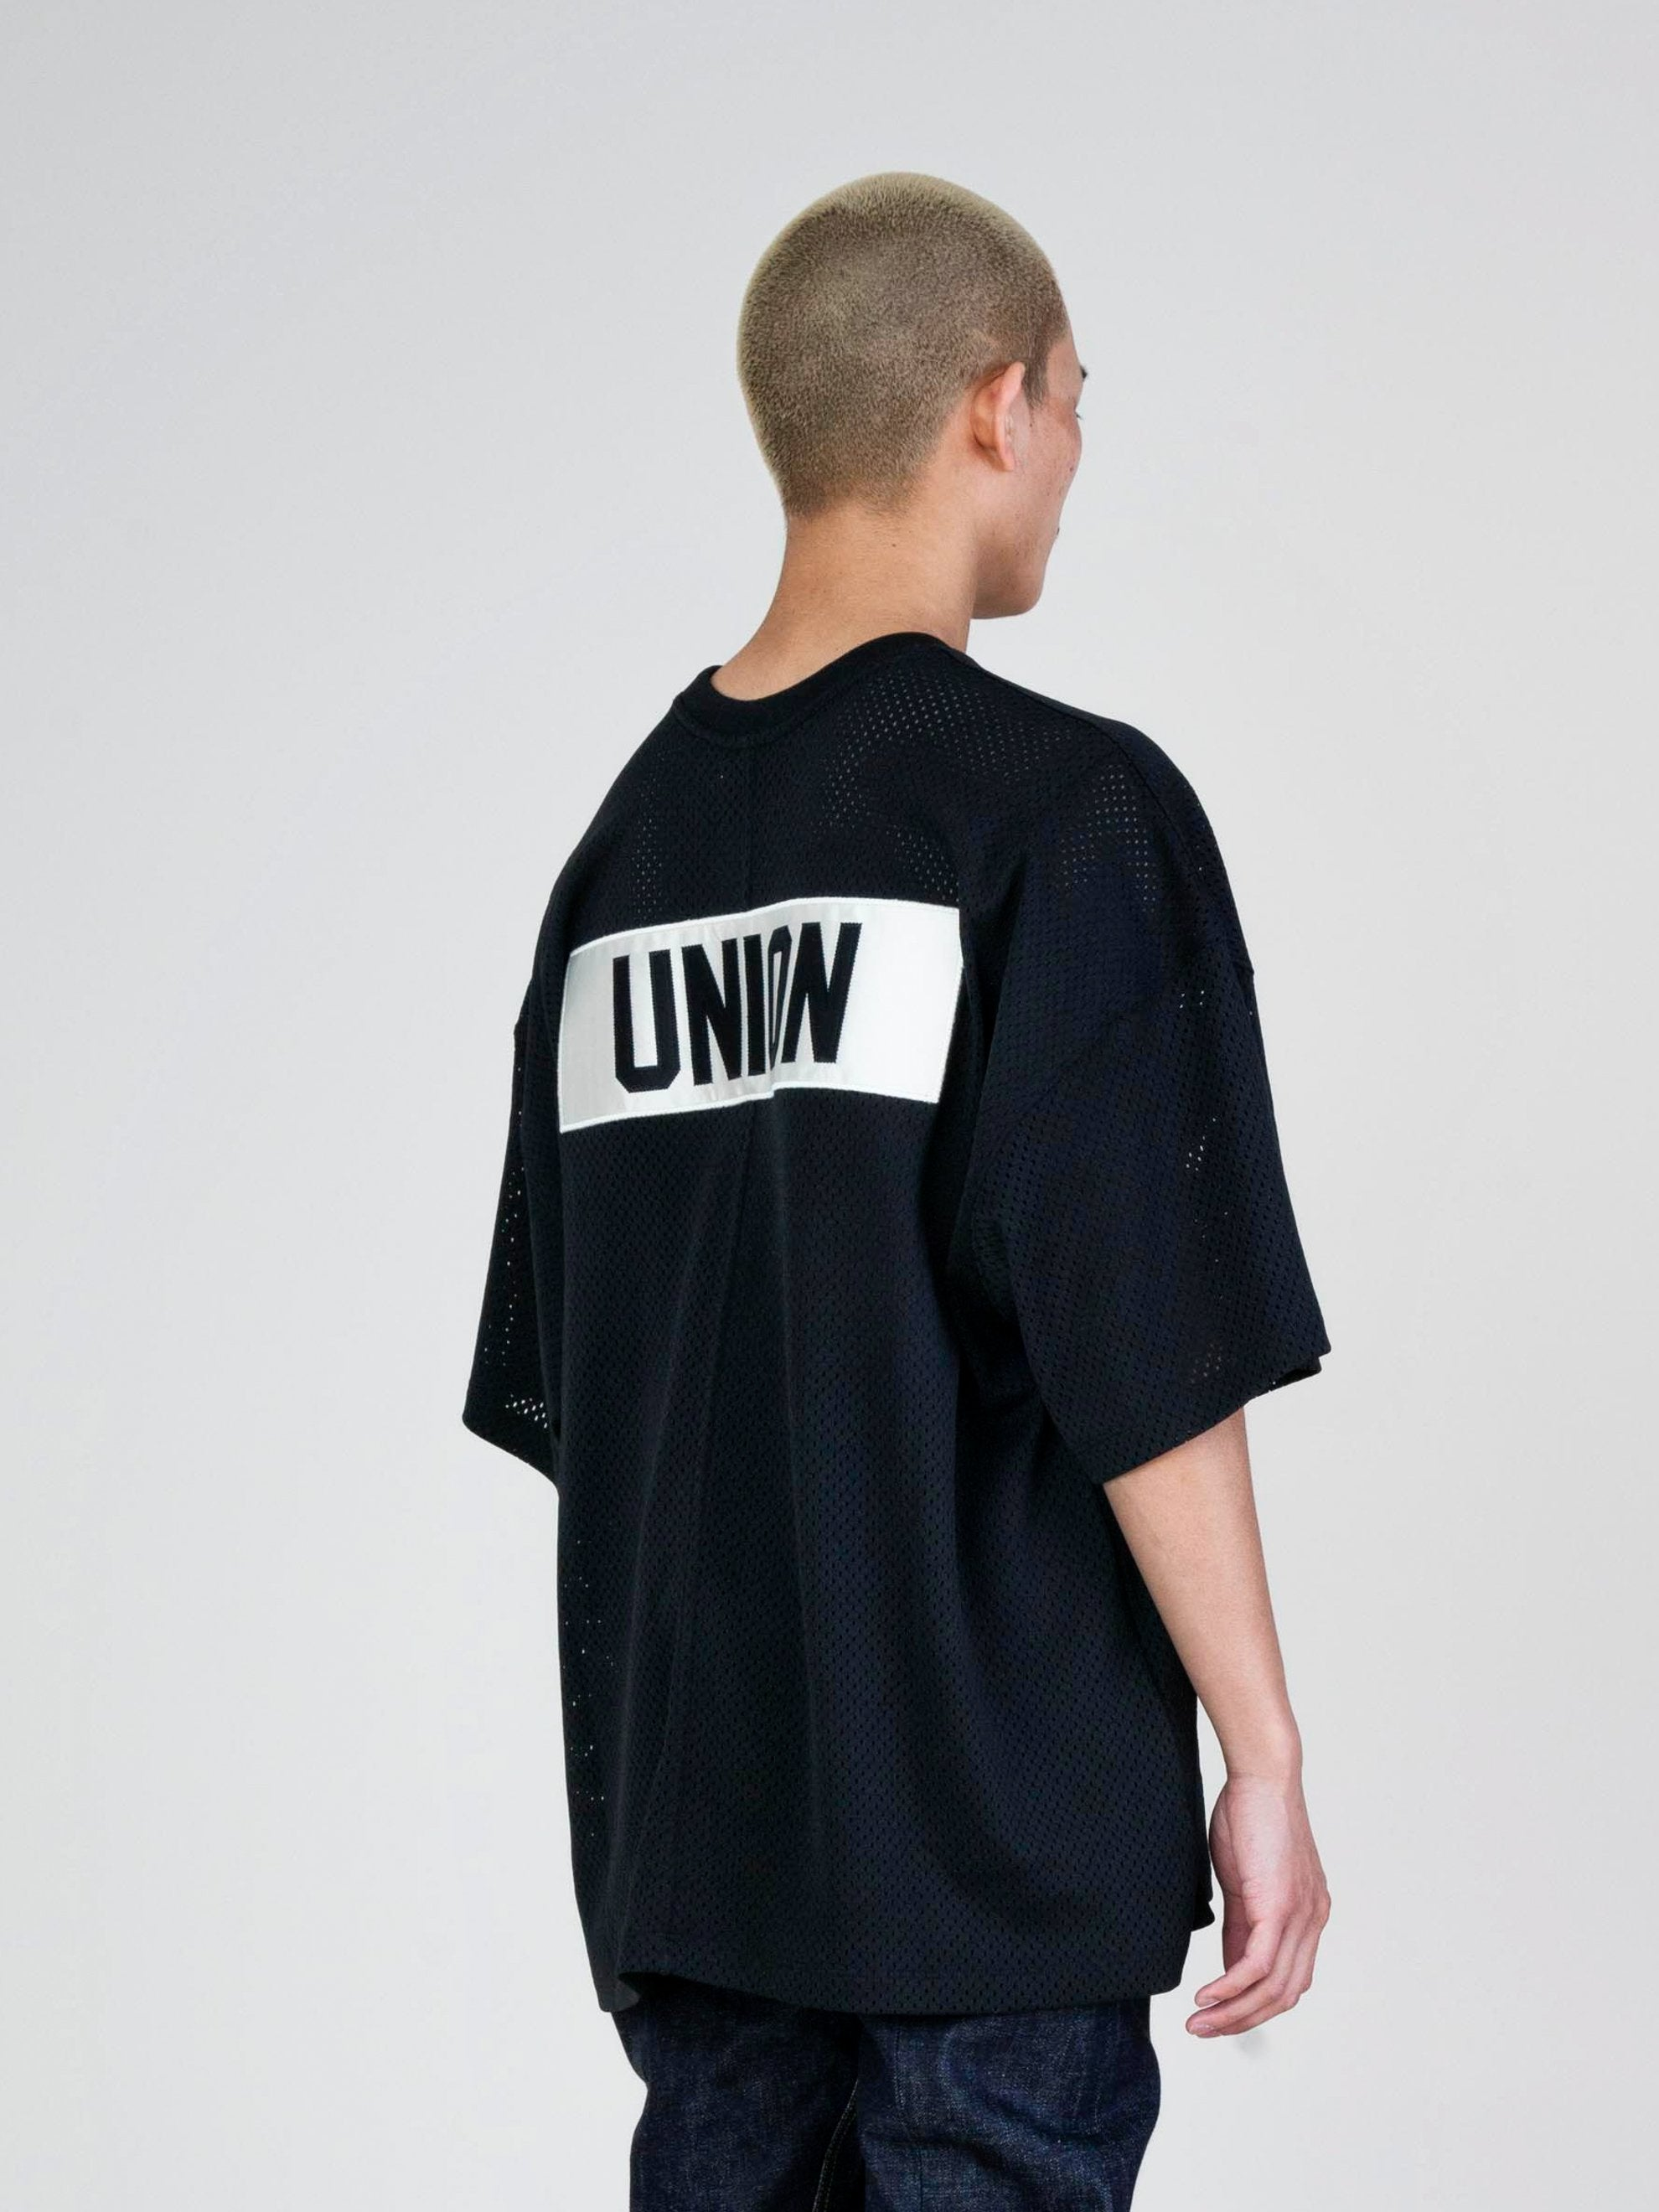 Black Mesh Tee (Union Exclusive) 5